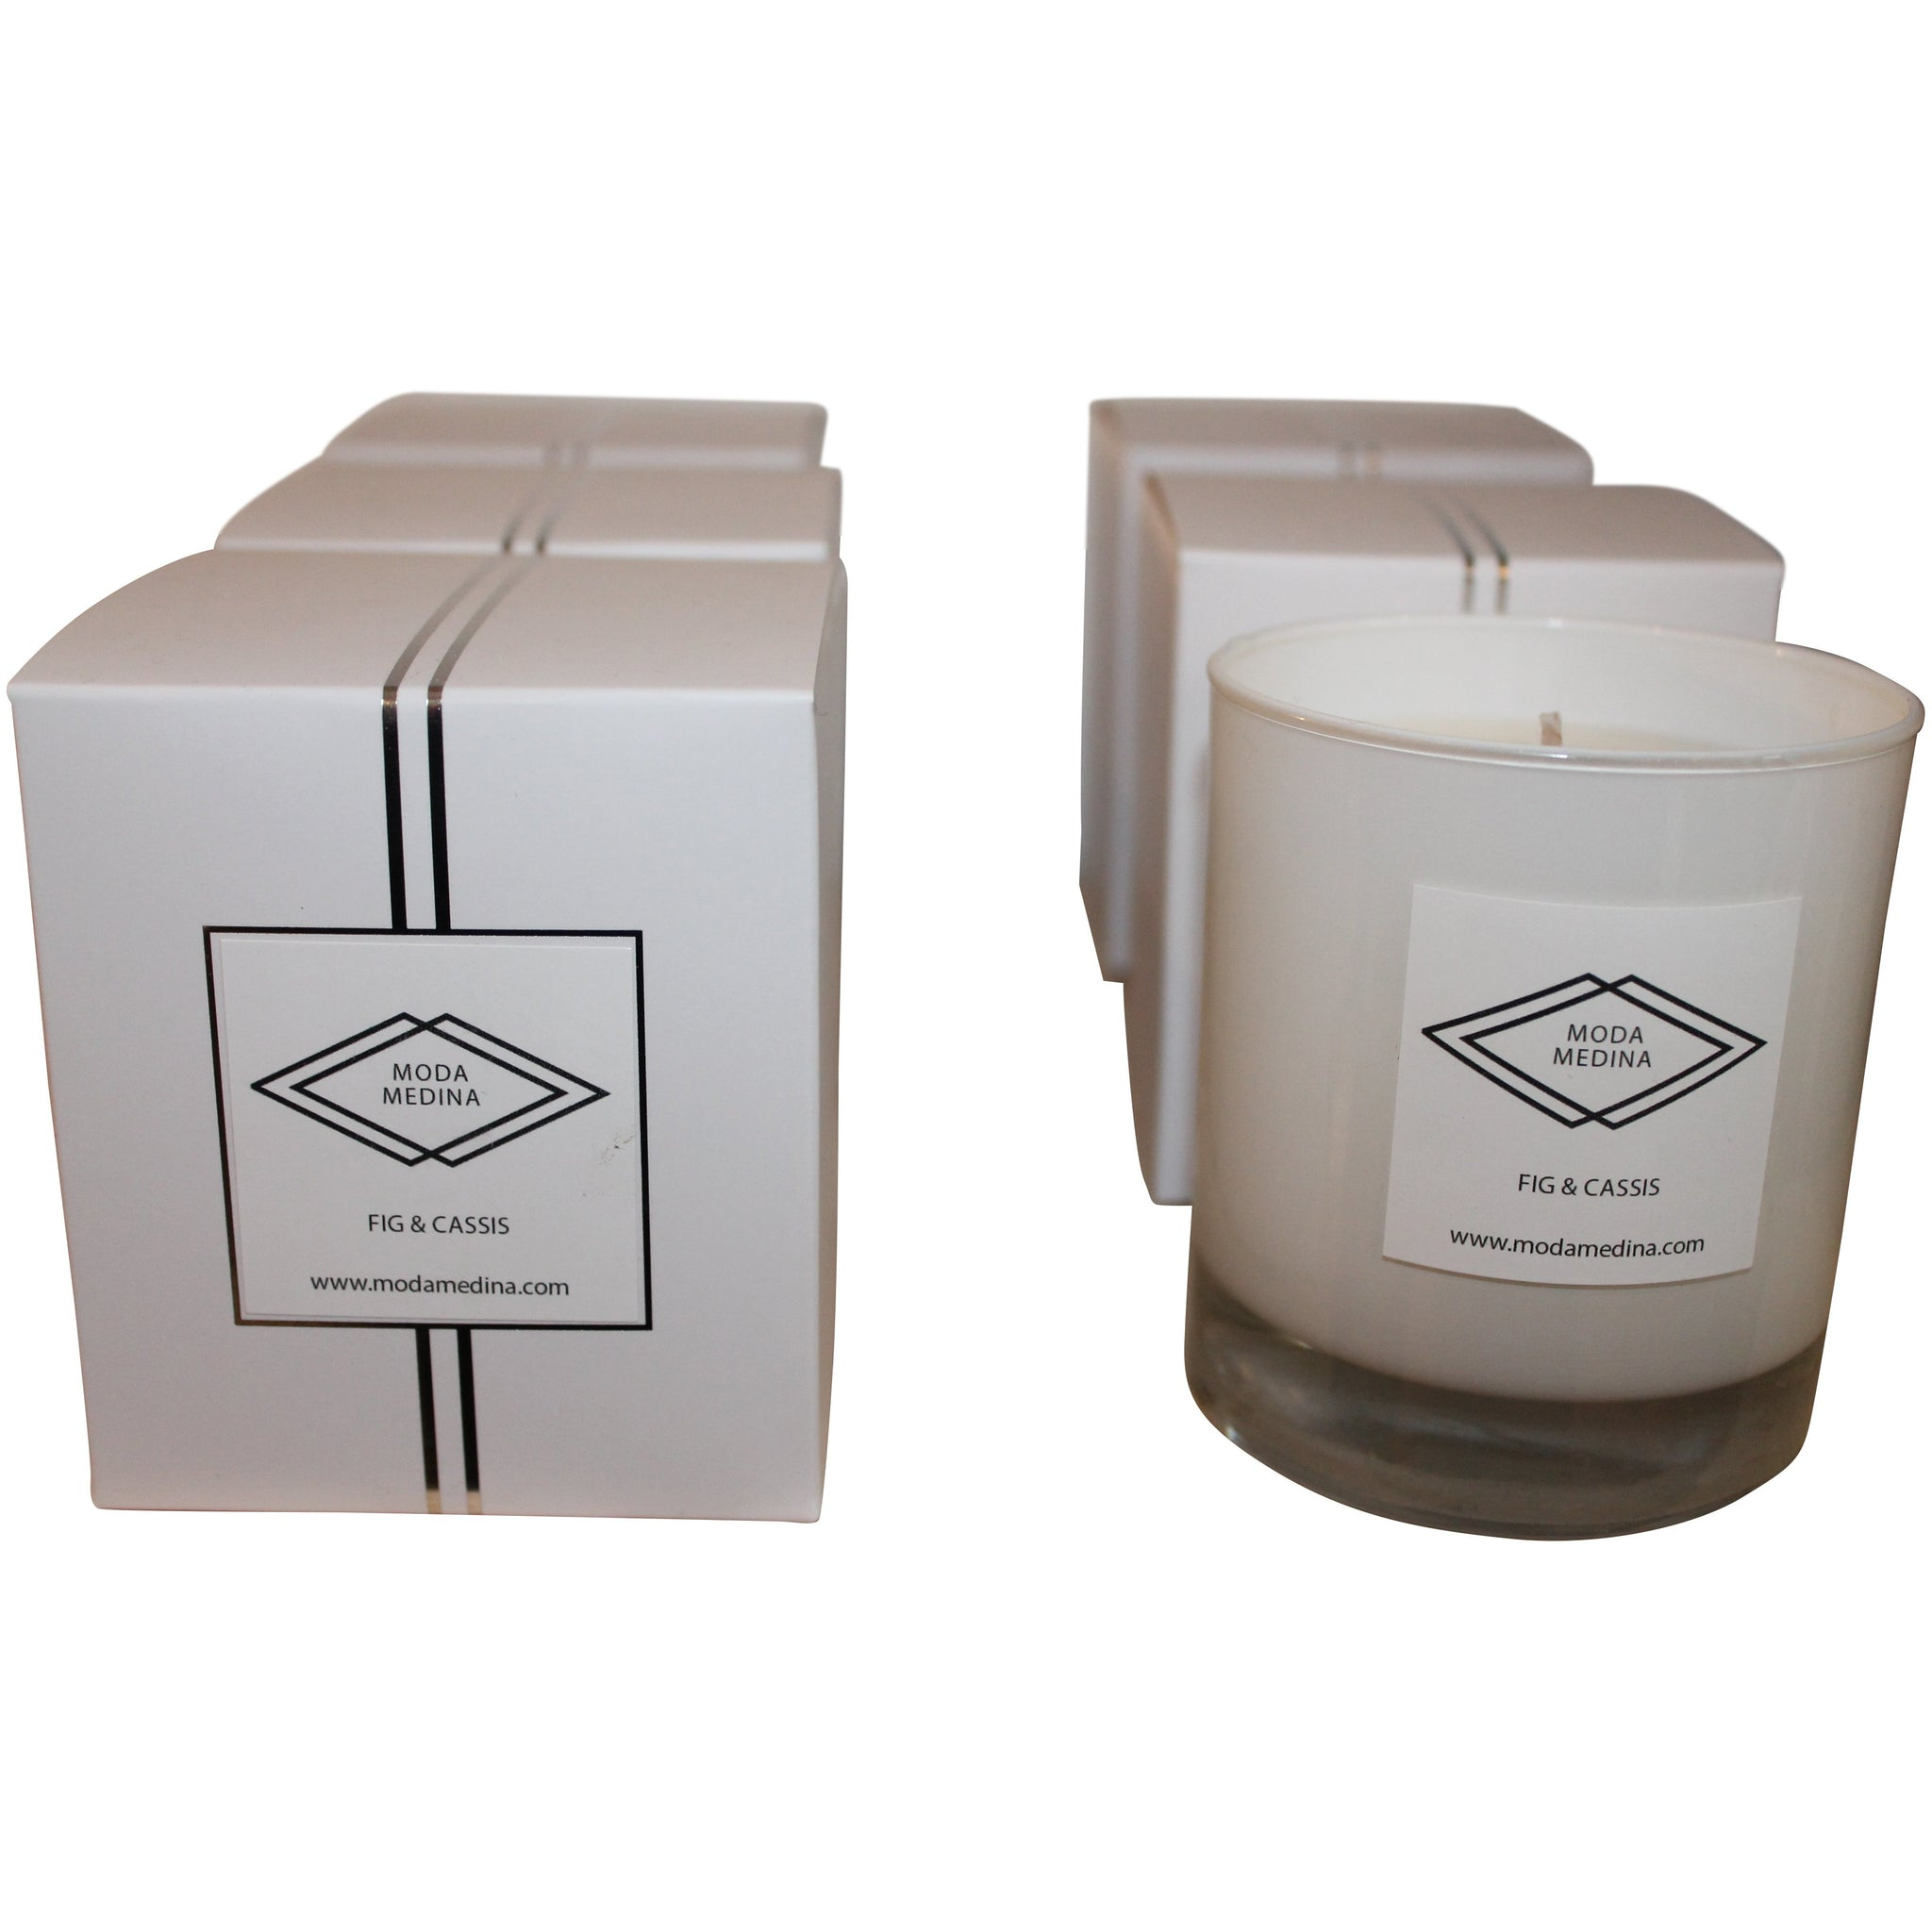 Boxed Candle Fig & Cassis FF-Candle-MODA MEDINA